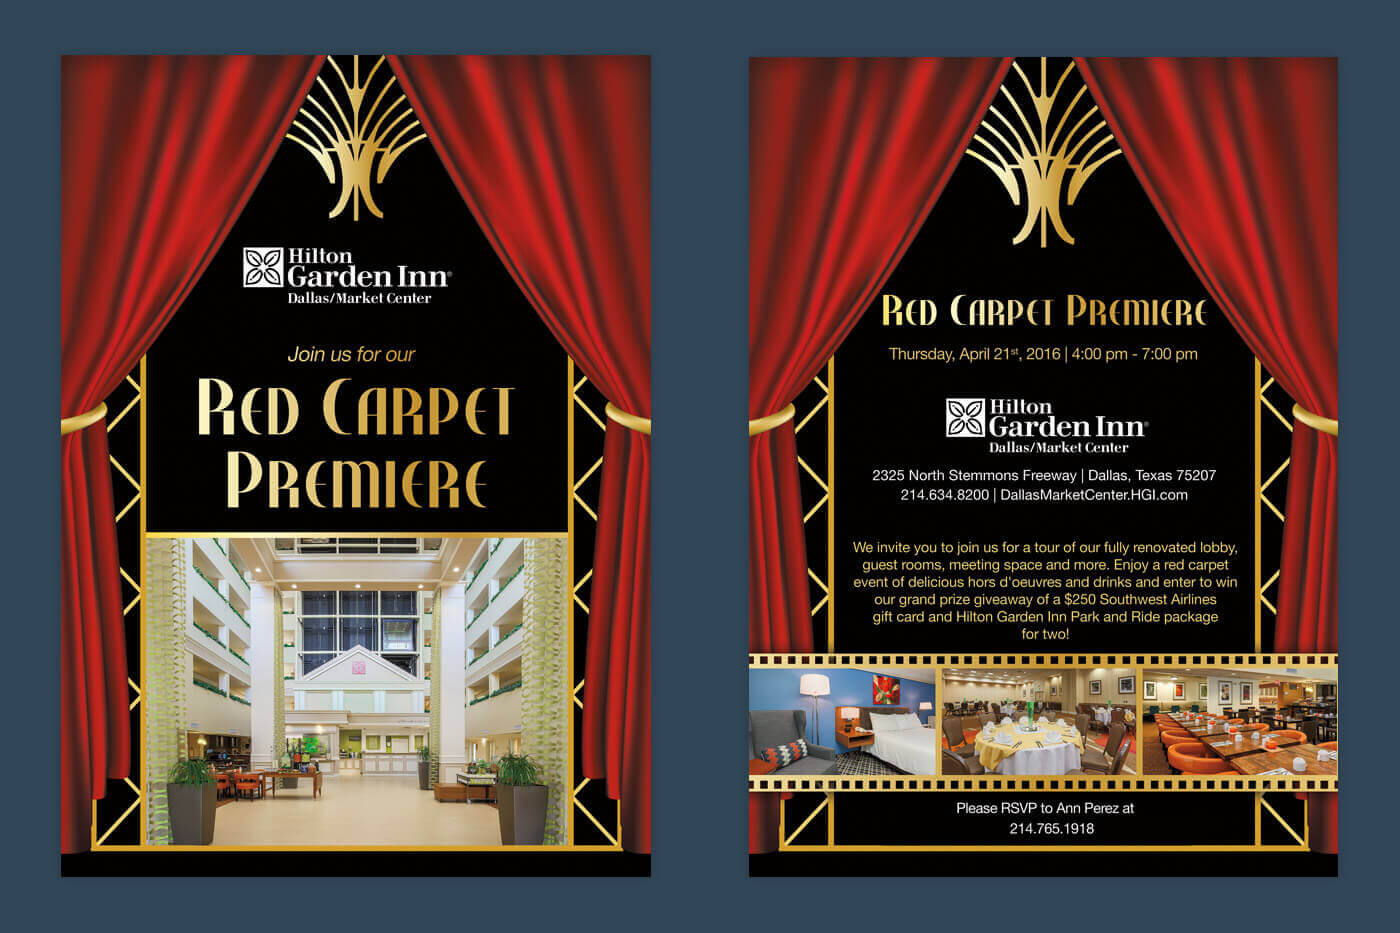 Invitation Design - Hilton Garden Inn Dallas/Market Center